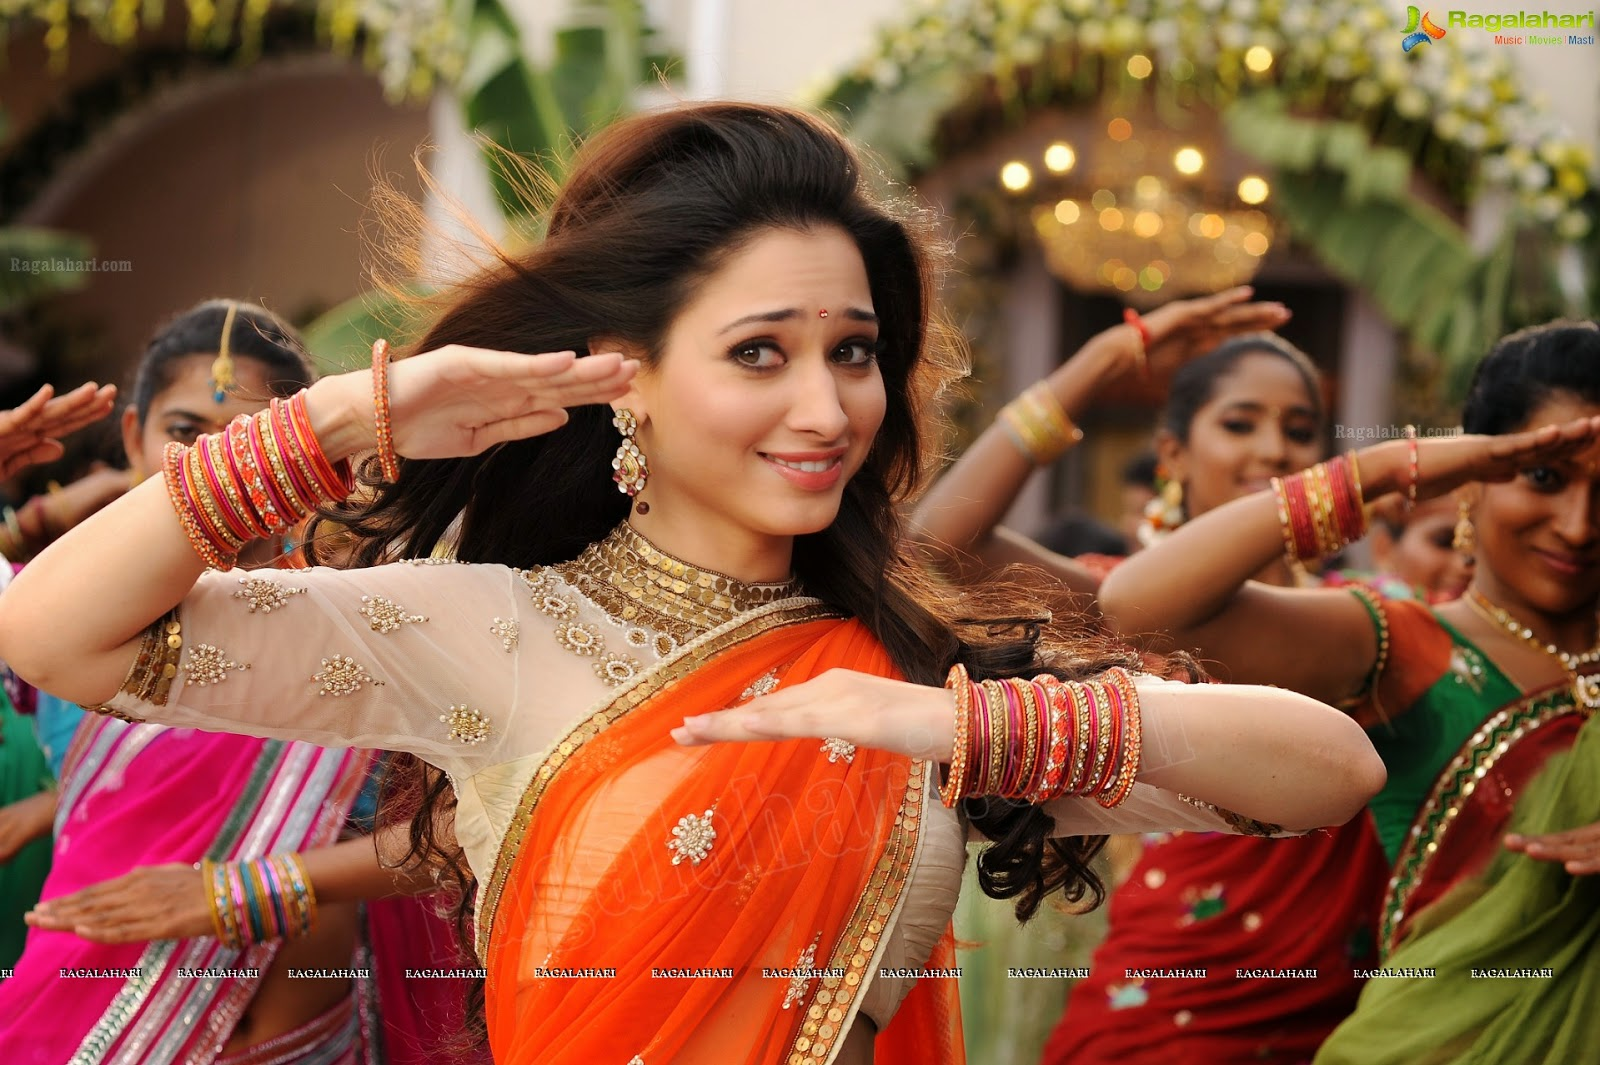 Tamanna In Tadakha Halfsaree: Indian Garam Masala: Tamanna Bhatia Orange Half Saree Hot